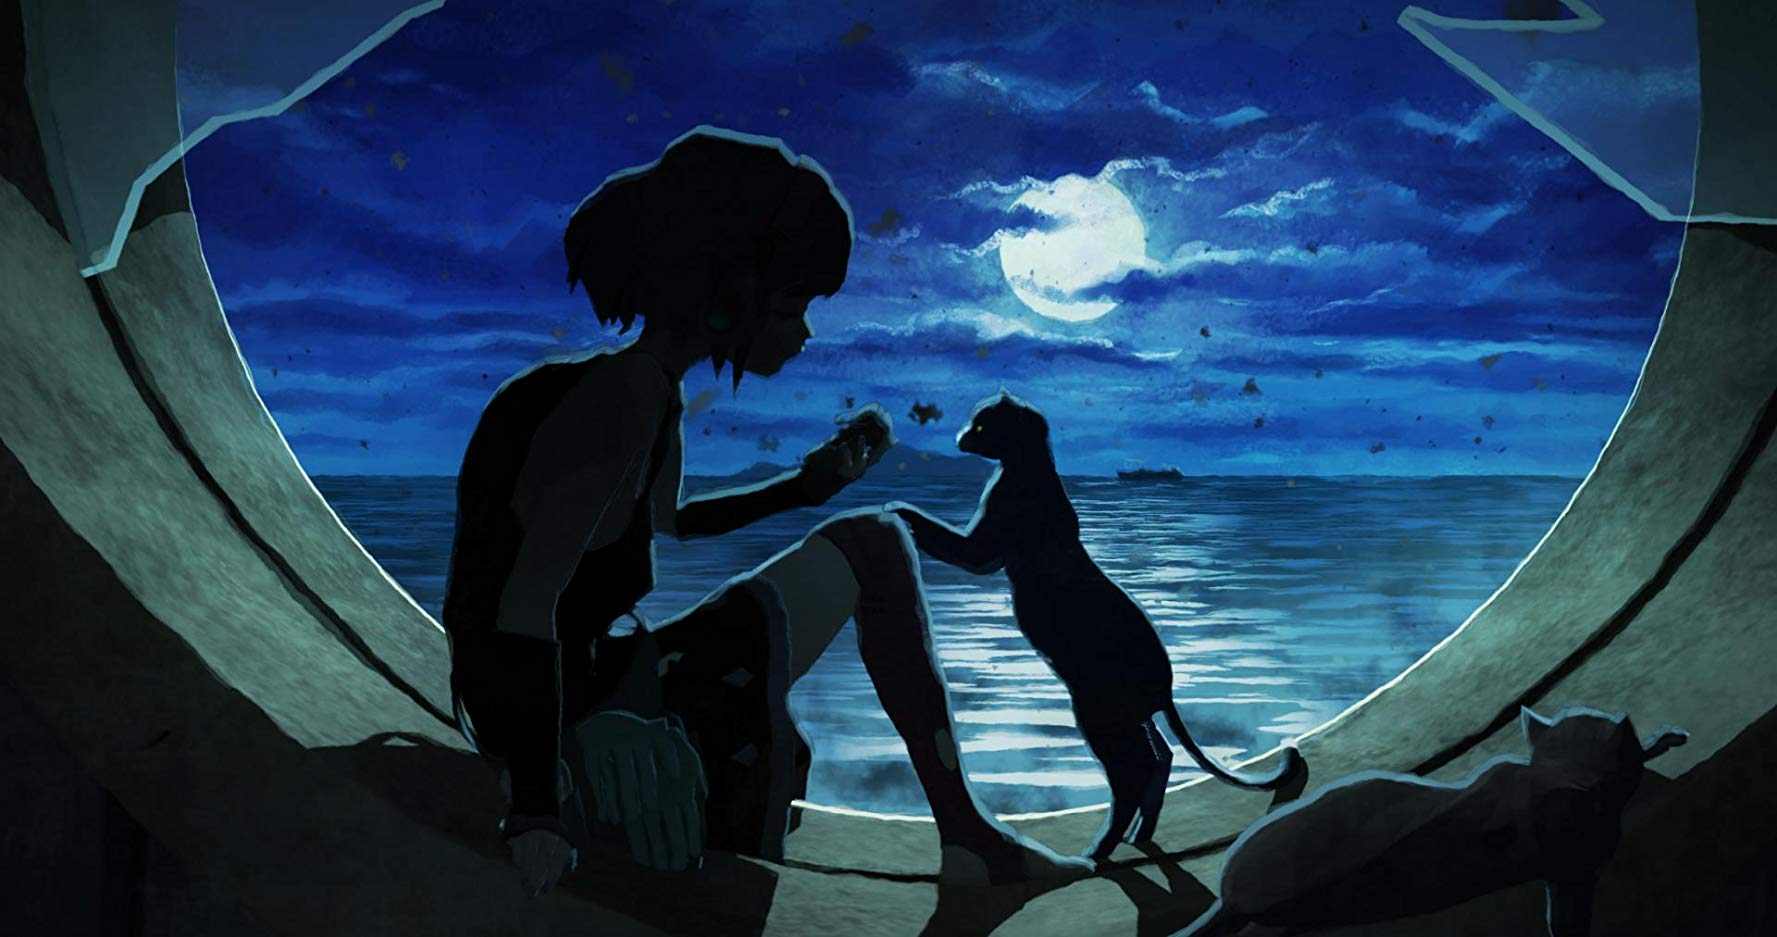 The silhouettes of a girl and a cat in front of a round window overlooking the sea at night.